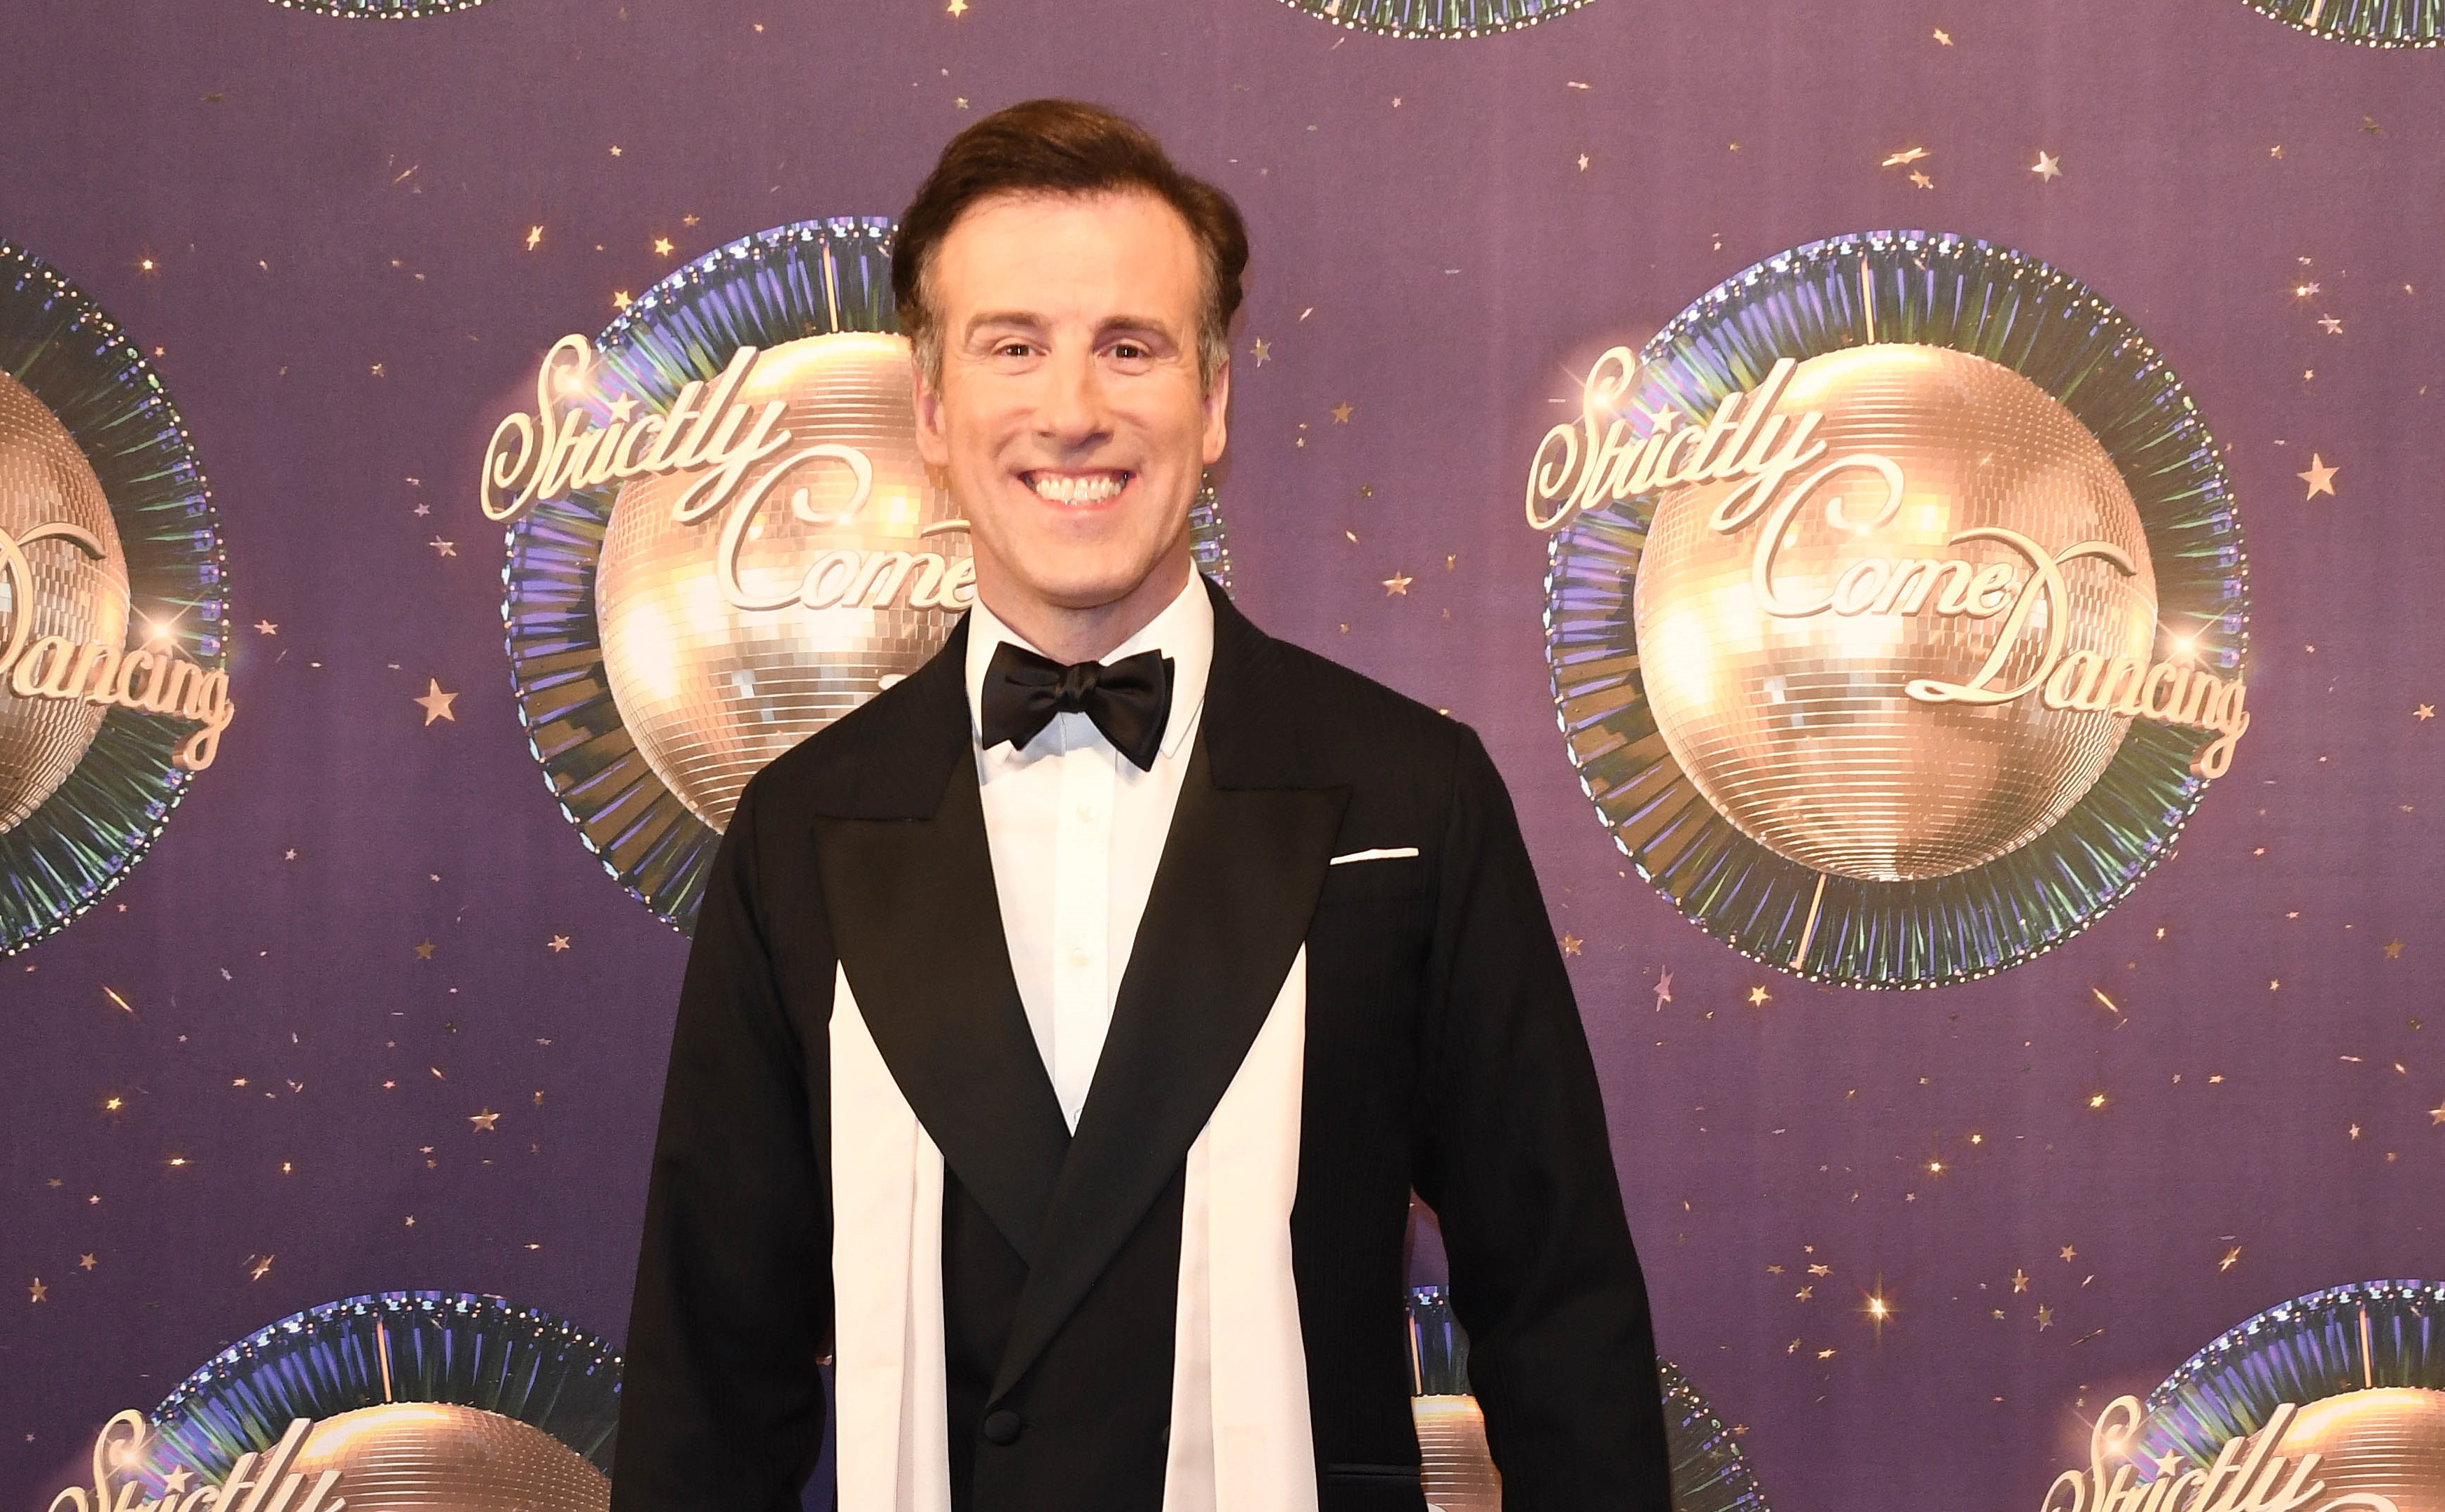 Anton du Beke 'favourite to replace Darcey Bussell on Strictly'